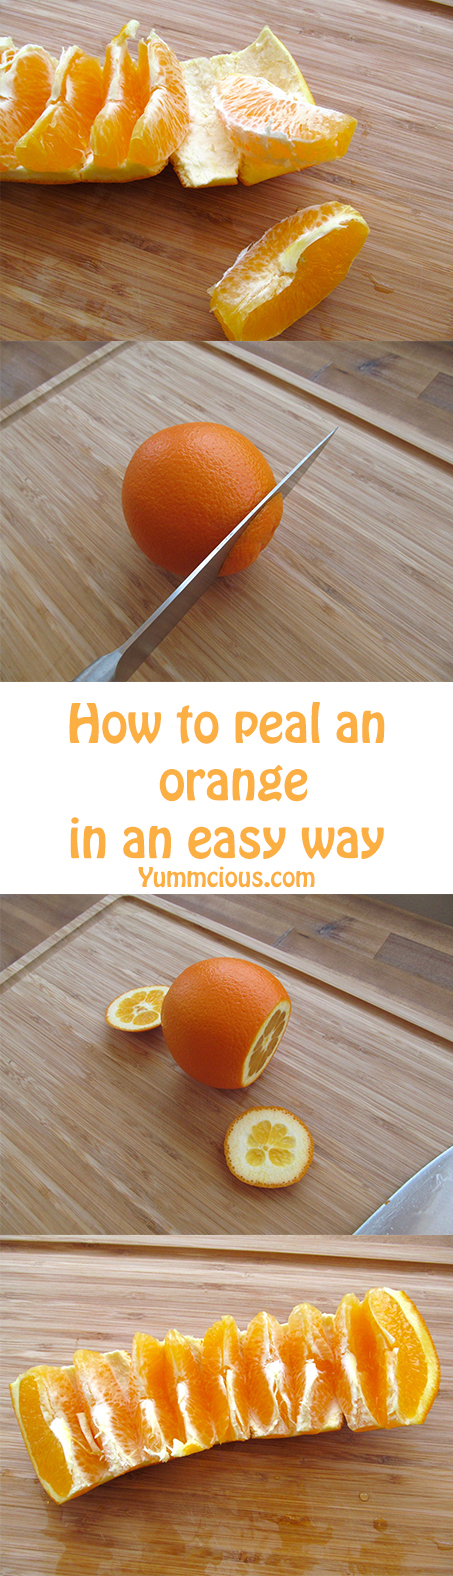 how-to-peel-an-orarnge-in-an-easy-way